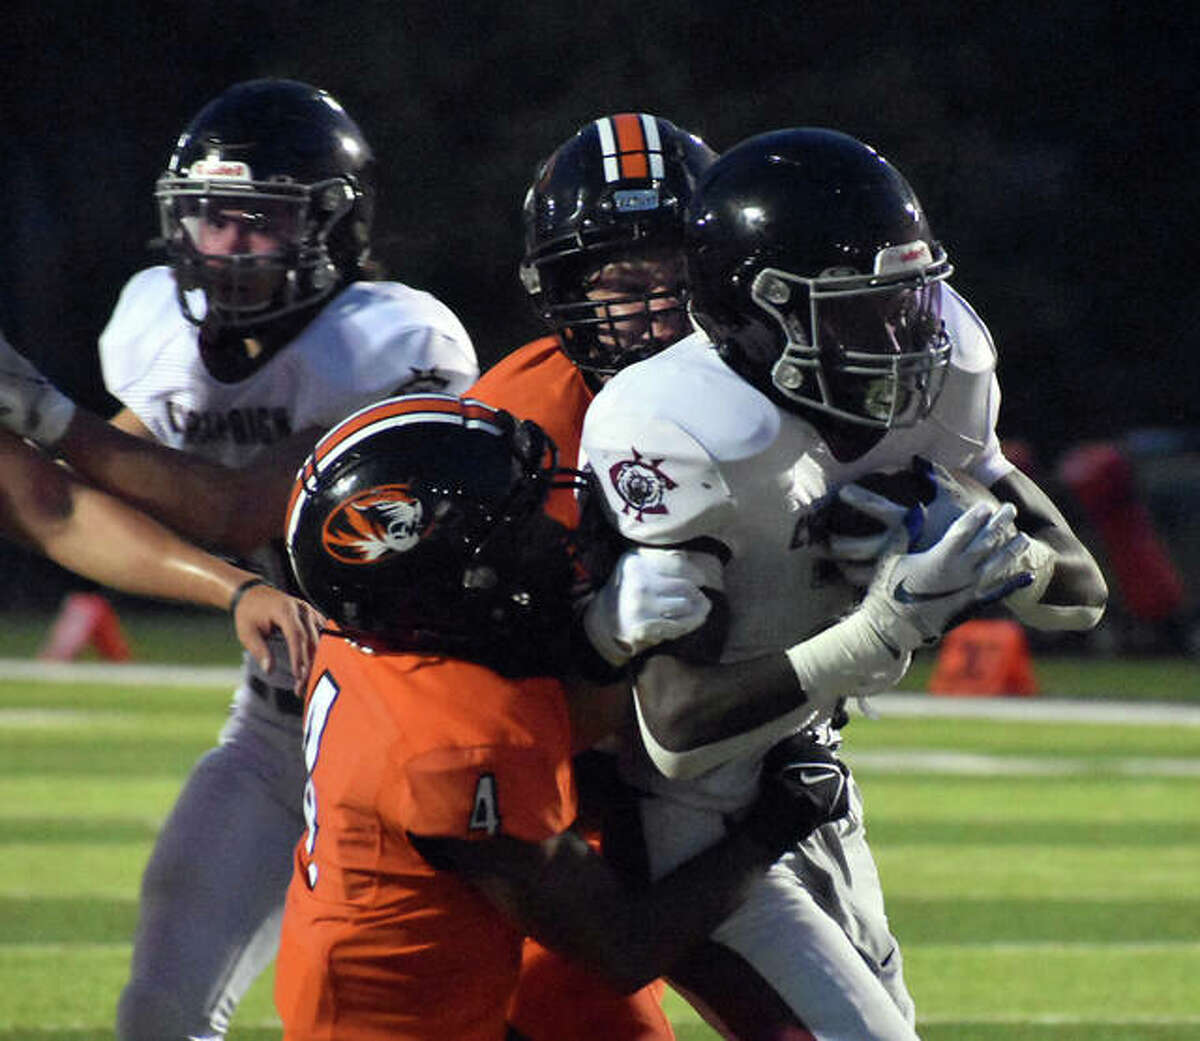 Edwardsville's Kellen Brnfre, left, and Dalton Brown combine to make a tackle in the Champaign Central backfield during the second quarter on Friday inside the District 7 Sports Complex.